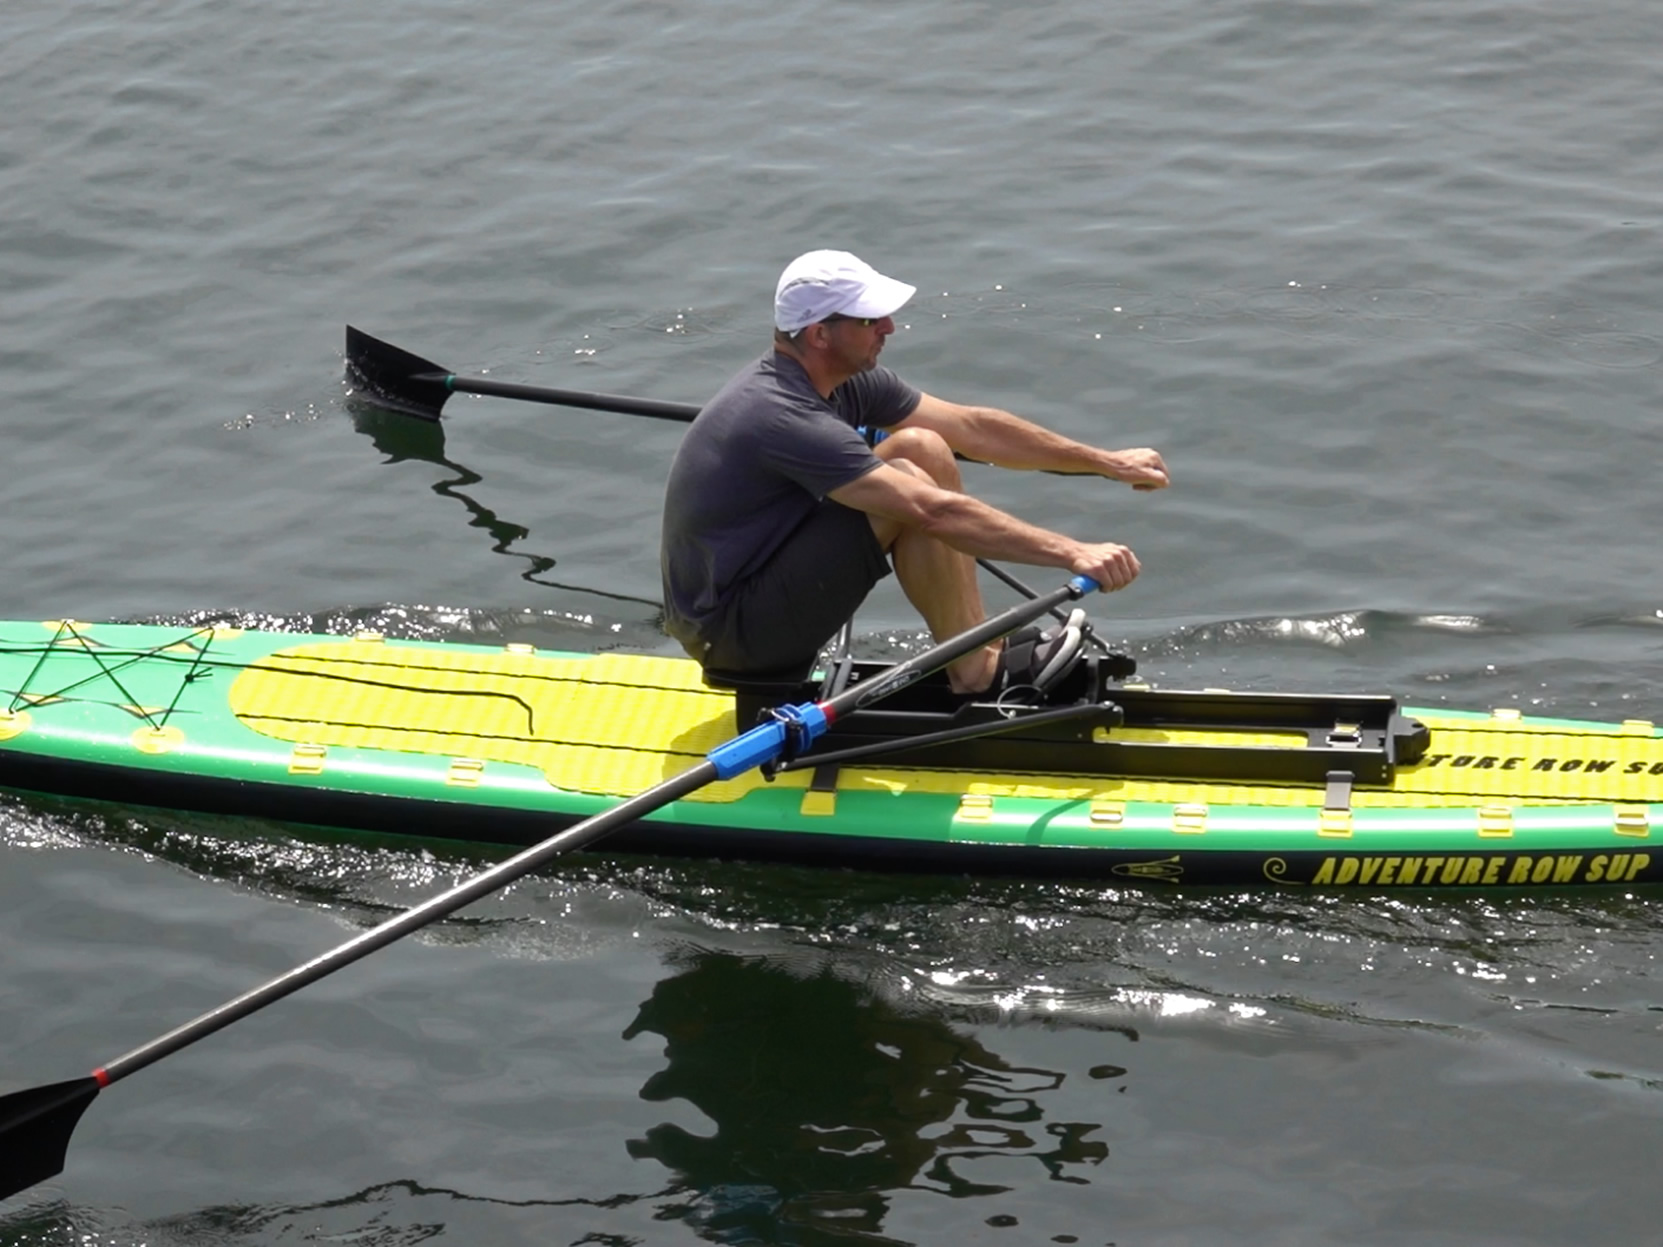 oar-board-stand-up-paddle-board-rower-whitehall-rowing-and-sail-Peter-ADV-16-SUP-2